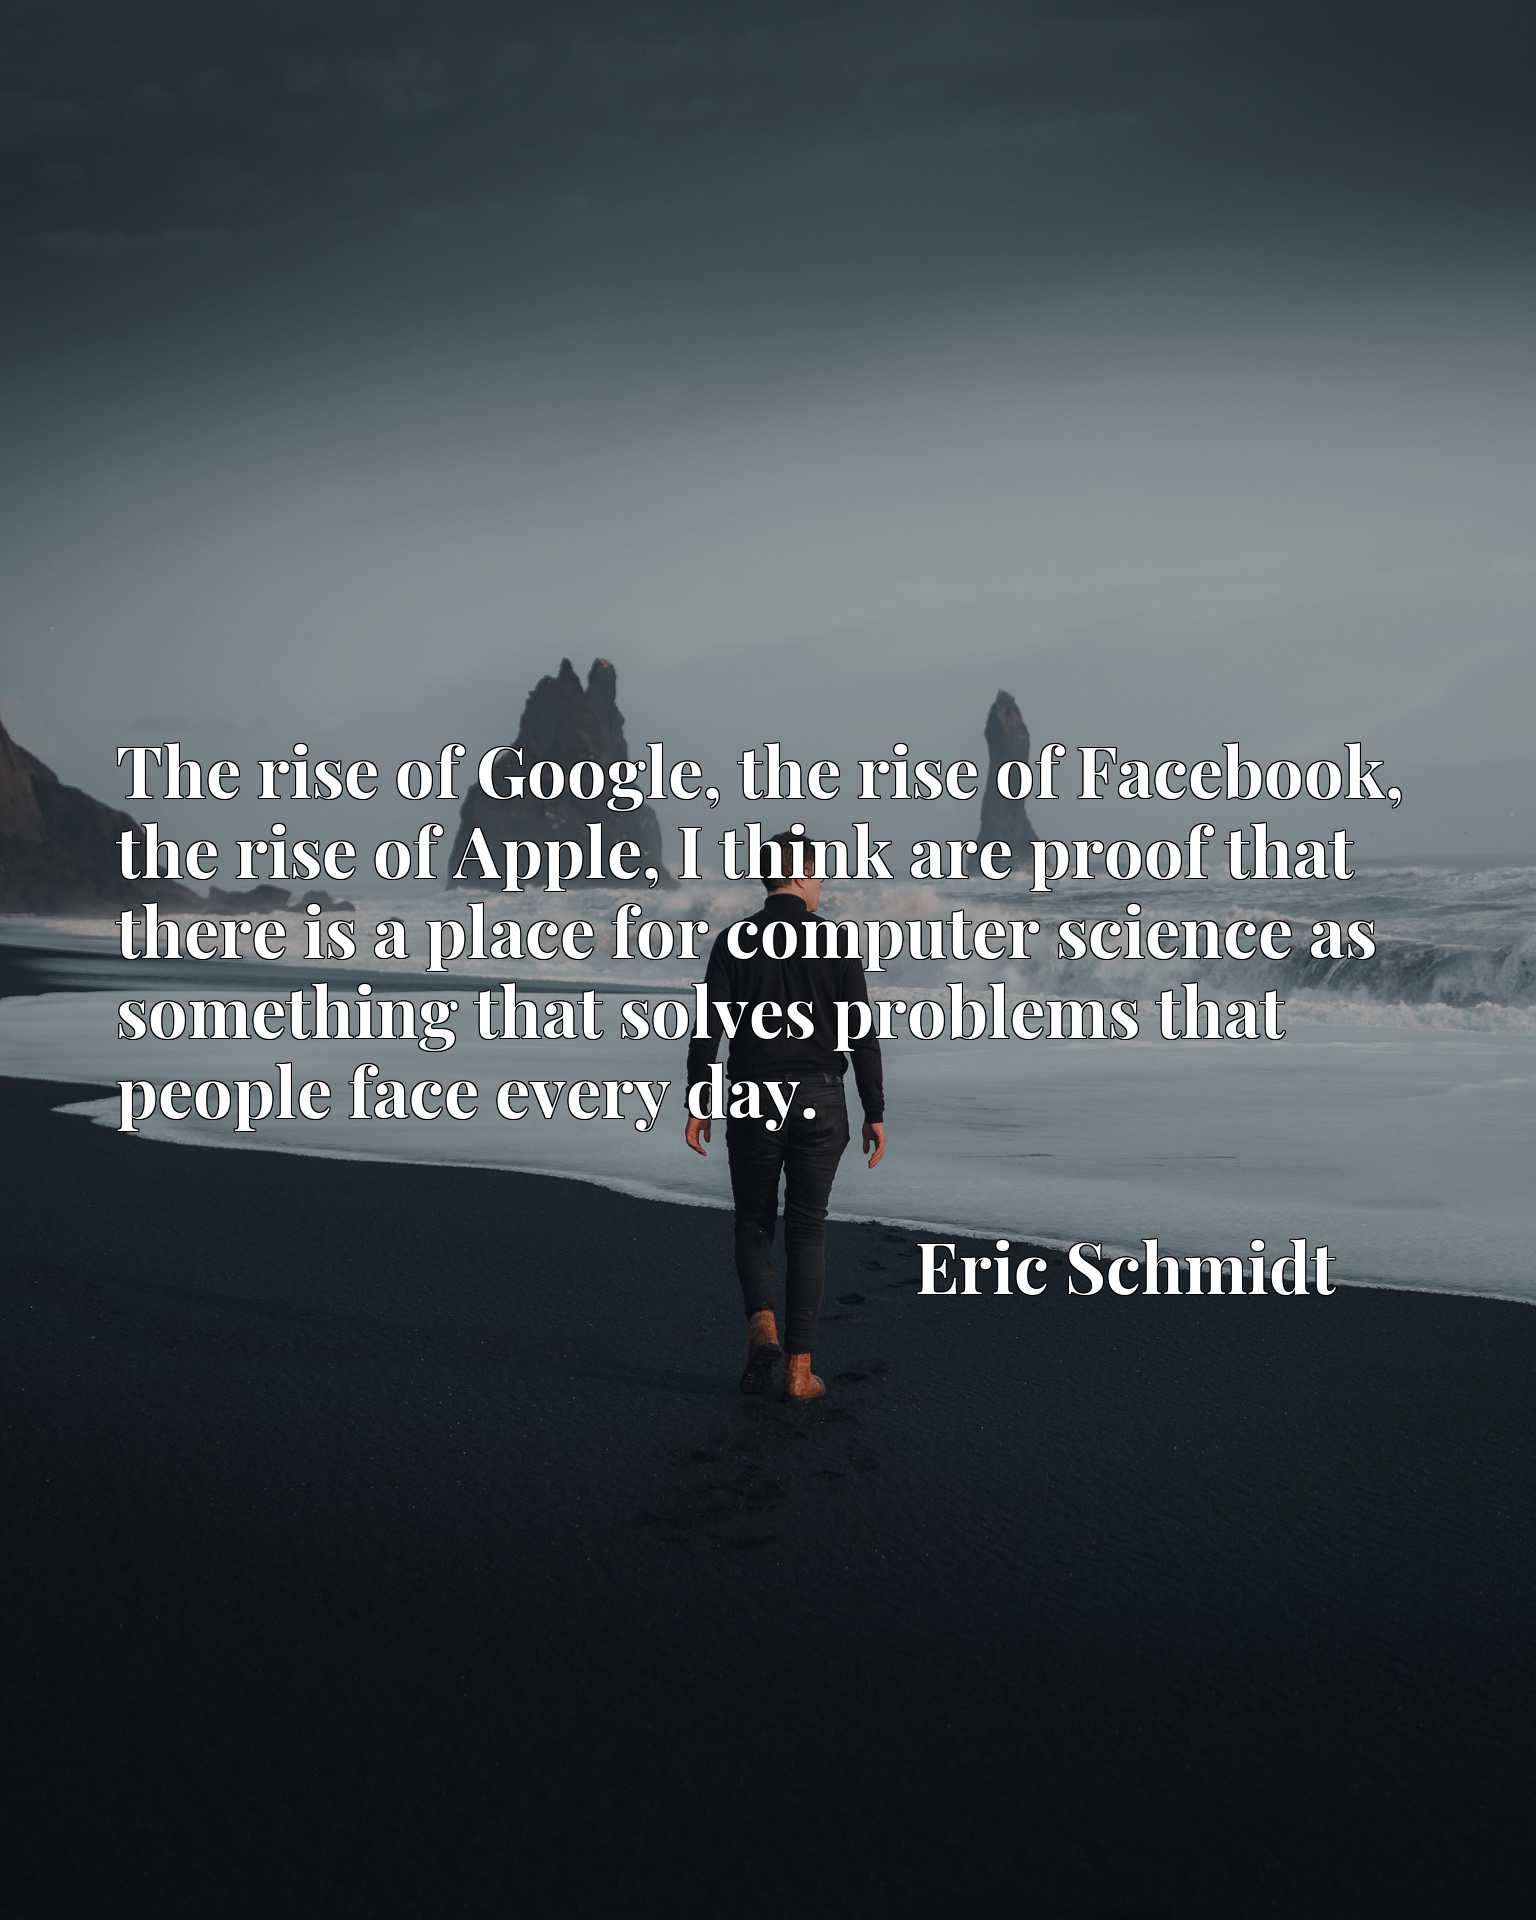 The rise of Google, the rise of Facebook, the rise of Apple, I think are proof that there is a place for computer science as something that solves problems that people face every day.